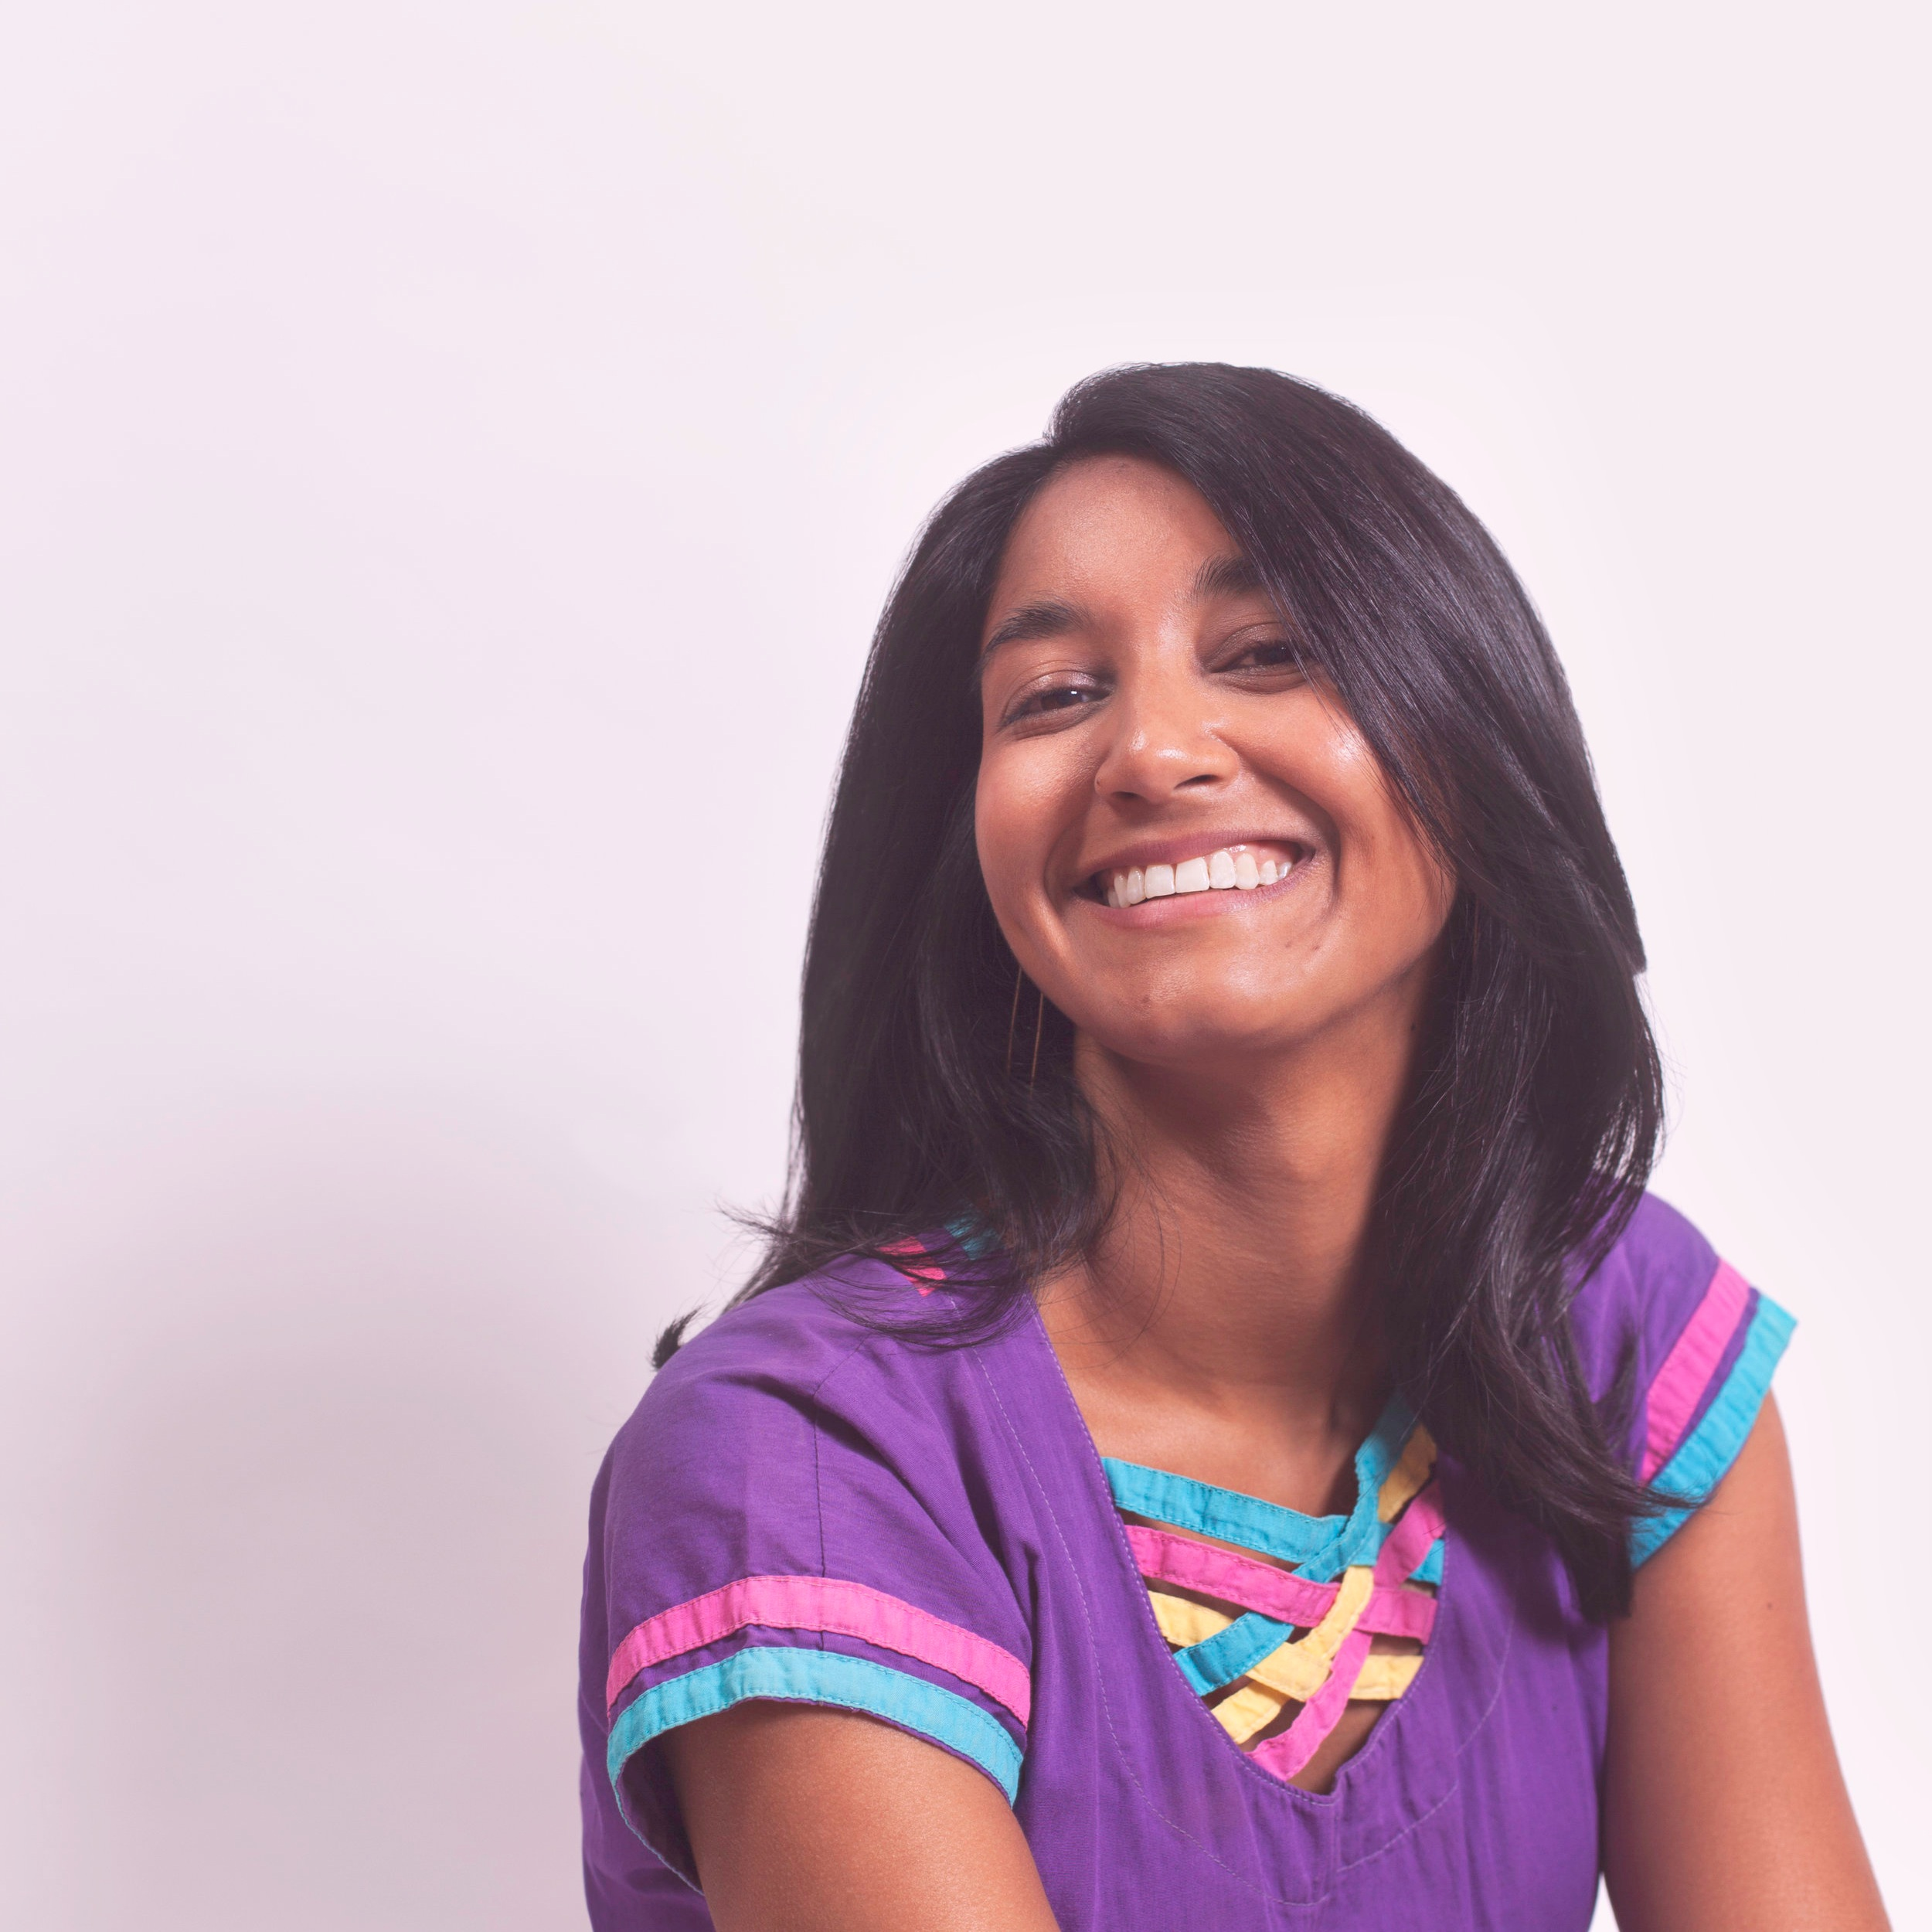 Krystal Persaud - Founder at GrouphugLearn More